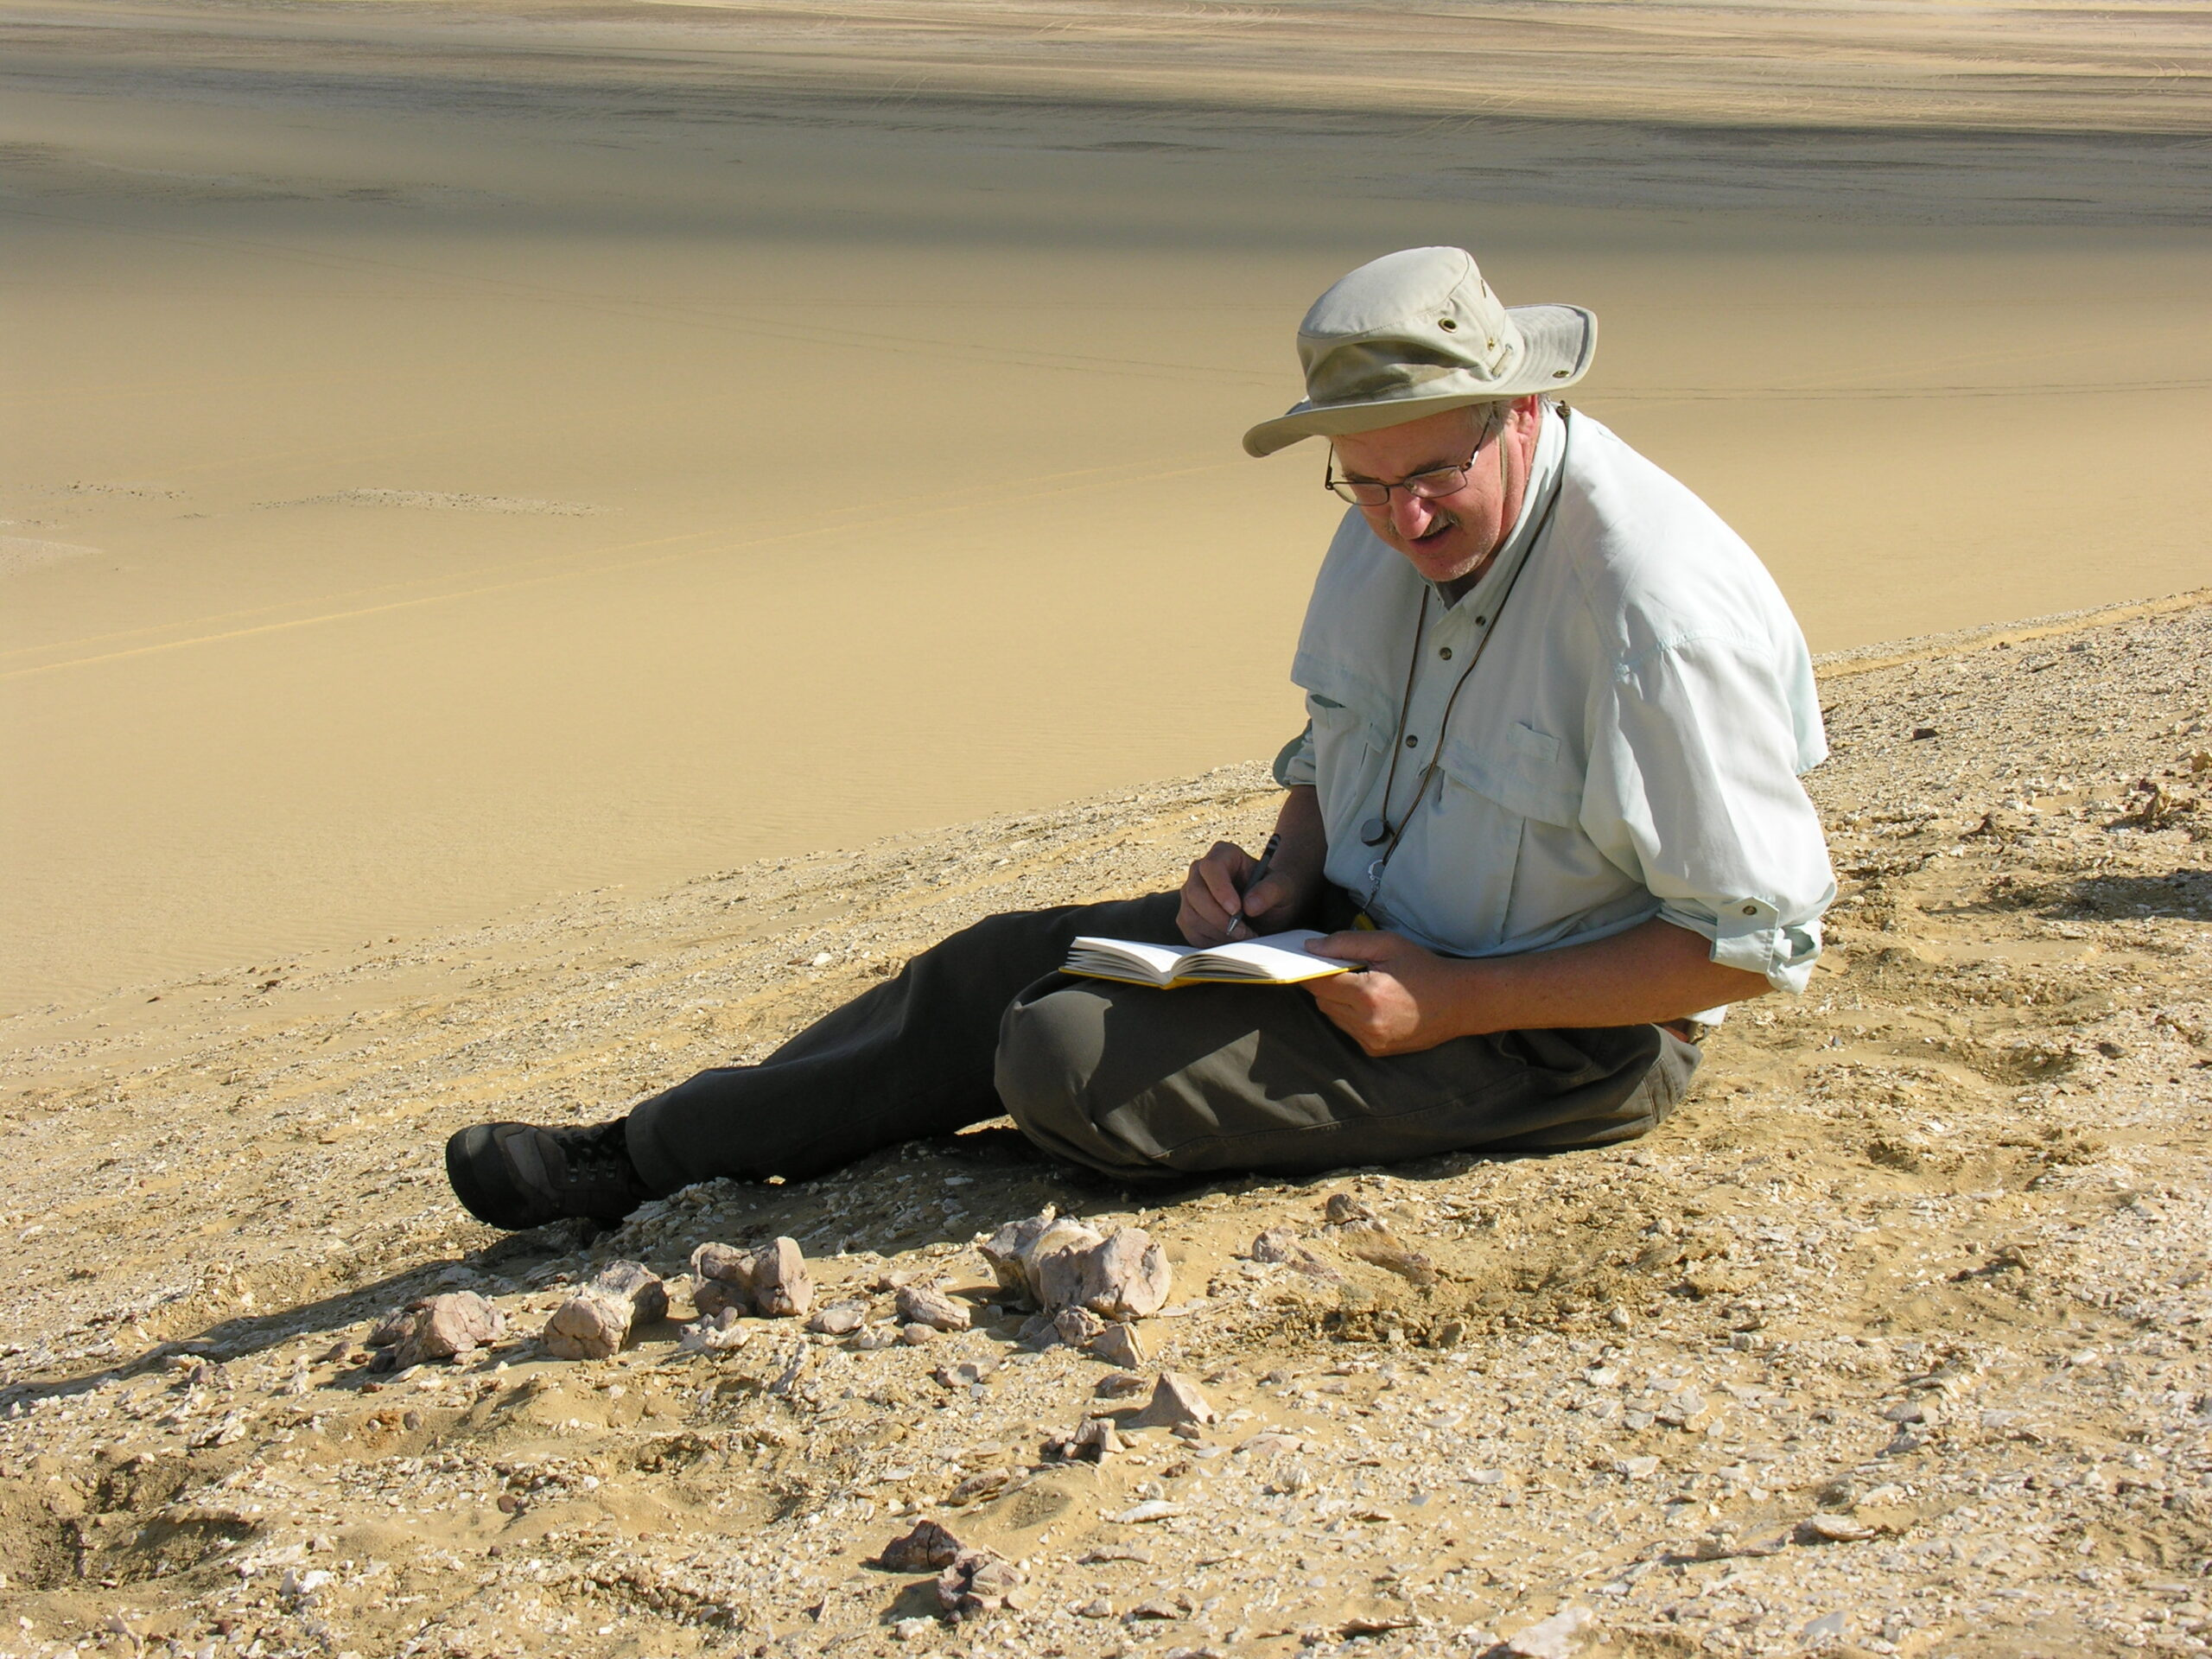 U-M paleontologist Philip Gingerich recording information at the Aegicetus site in 2007 before the excavation started. The site is within the Wadi Al Hitan World Heritage Site in the Western Desert of Egypt. Image courtesy: Philip Gingerich